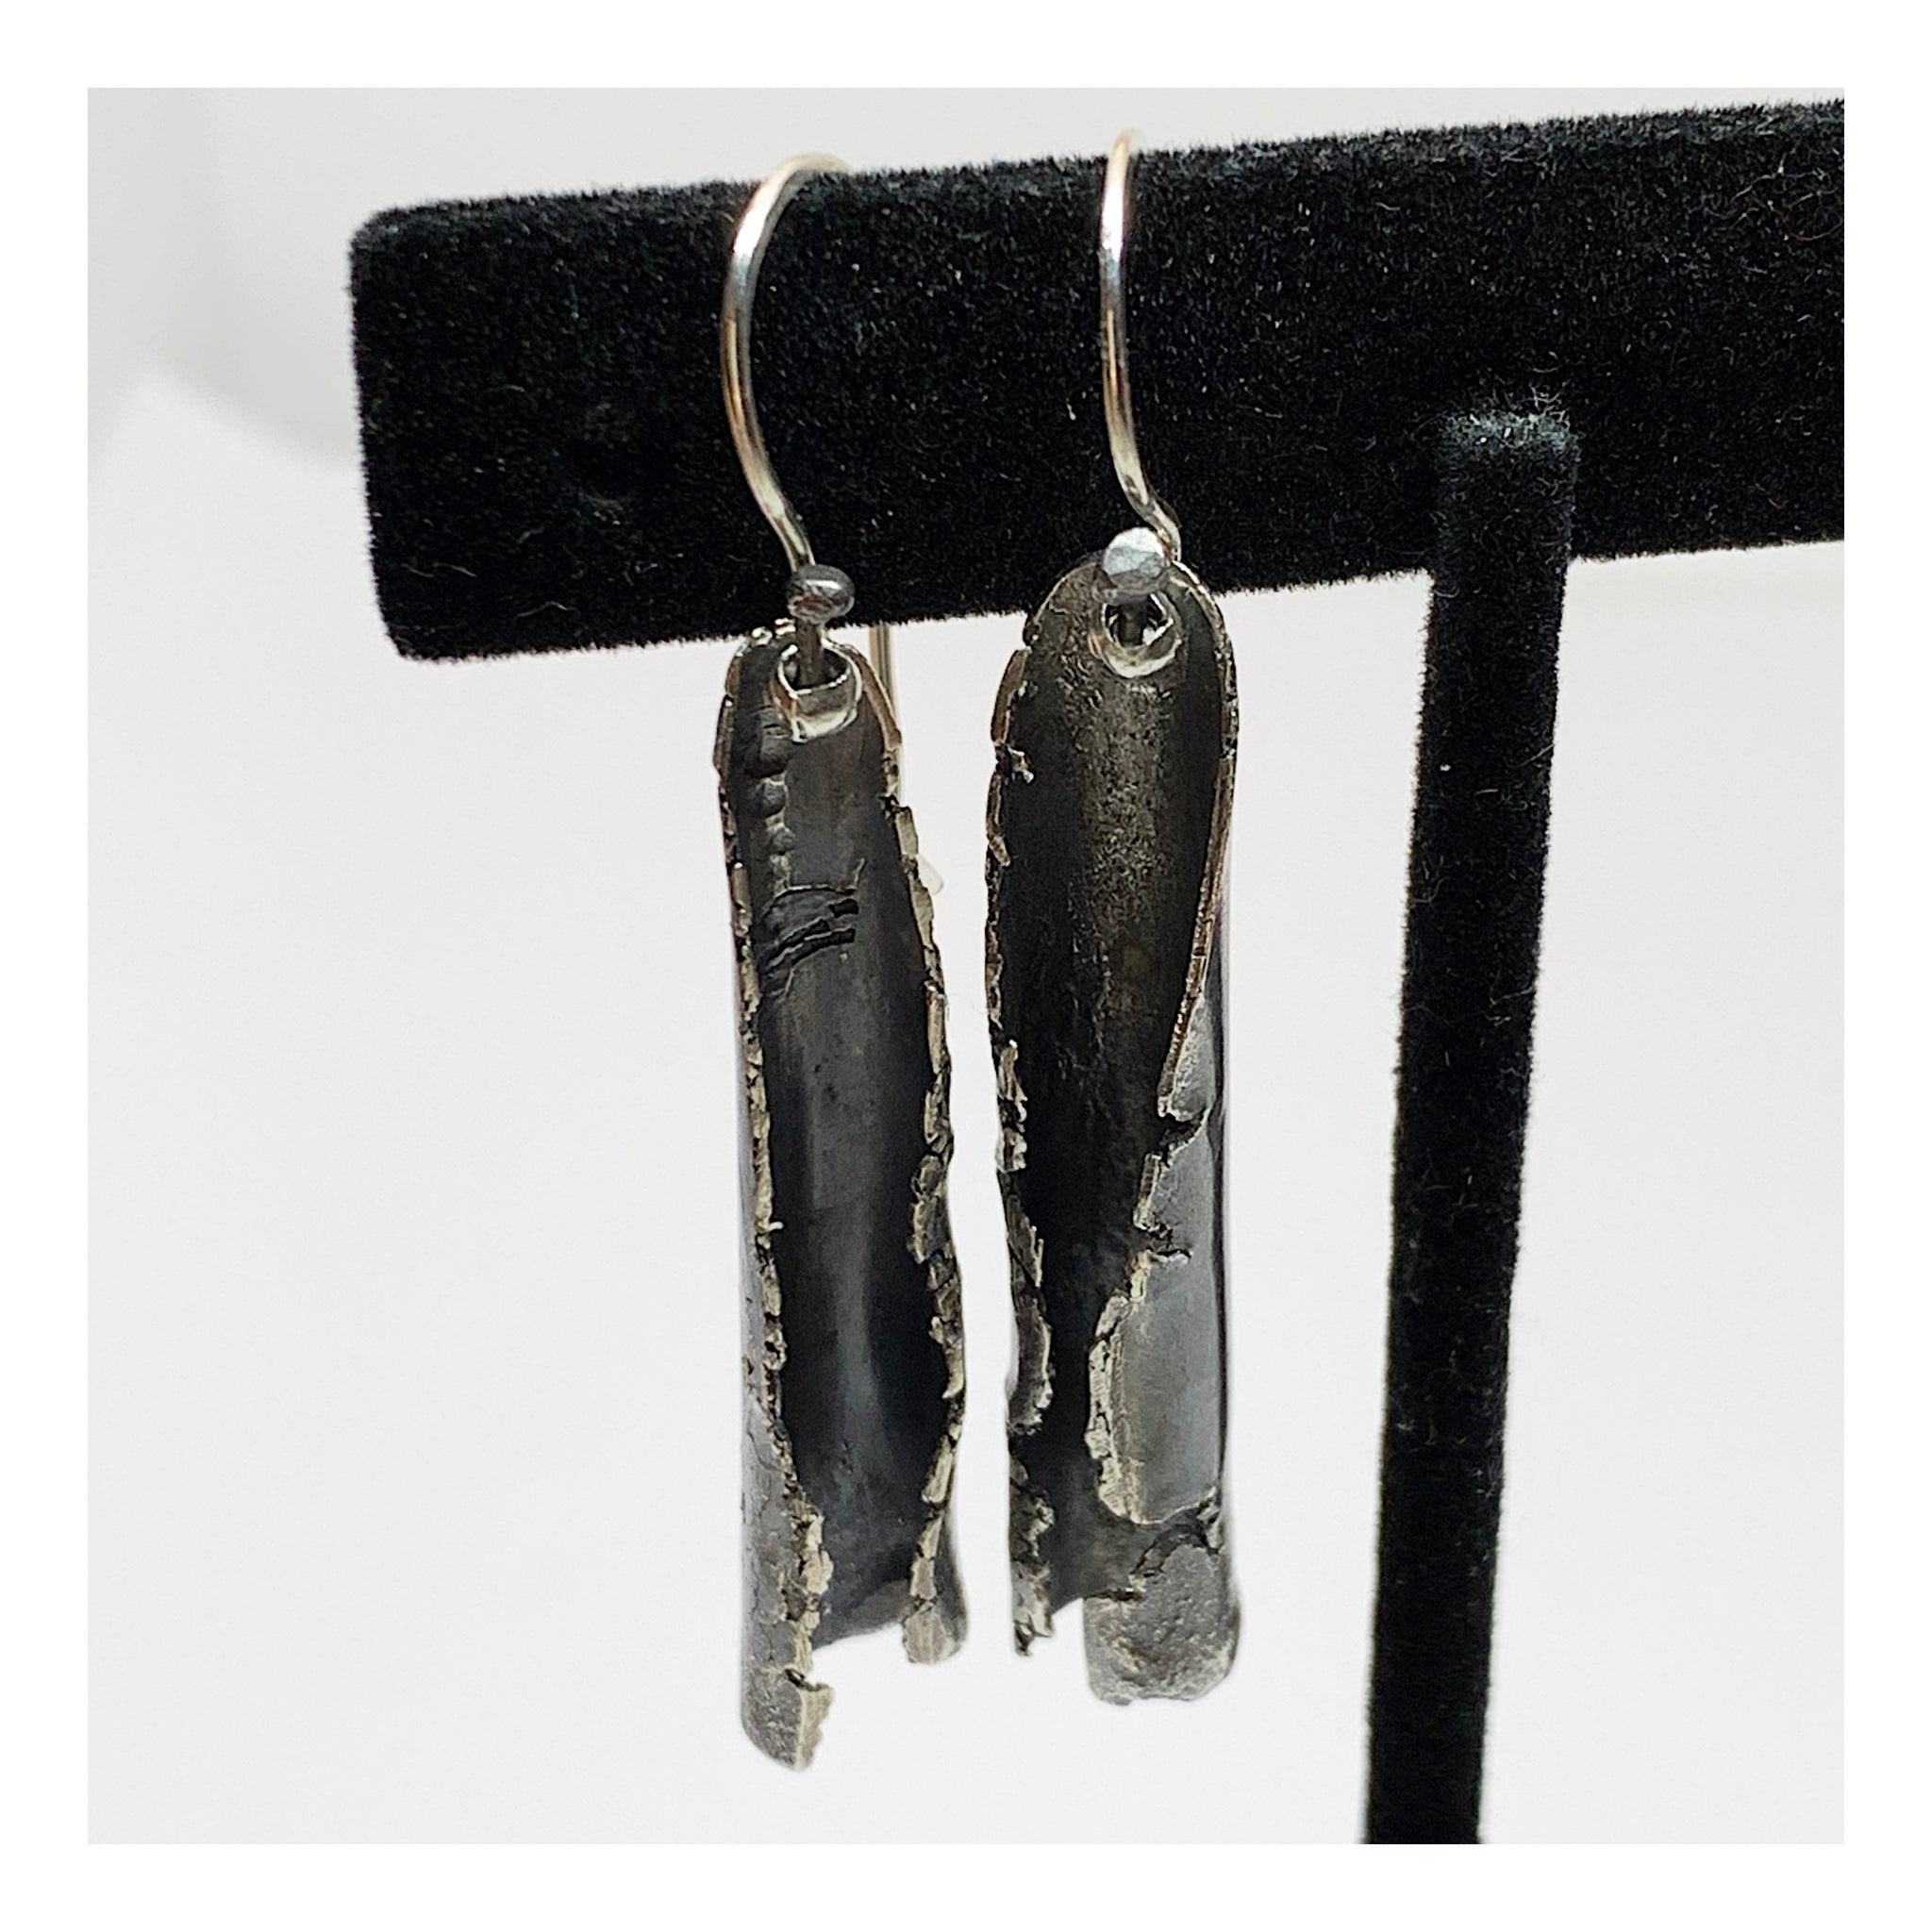 Unique and Unusual Organic Silver Earrings - Handmade OOAK Jewelry